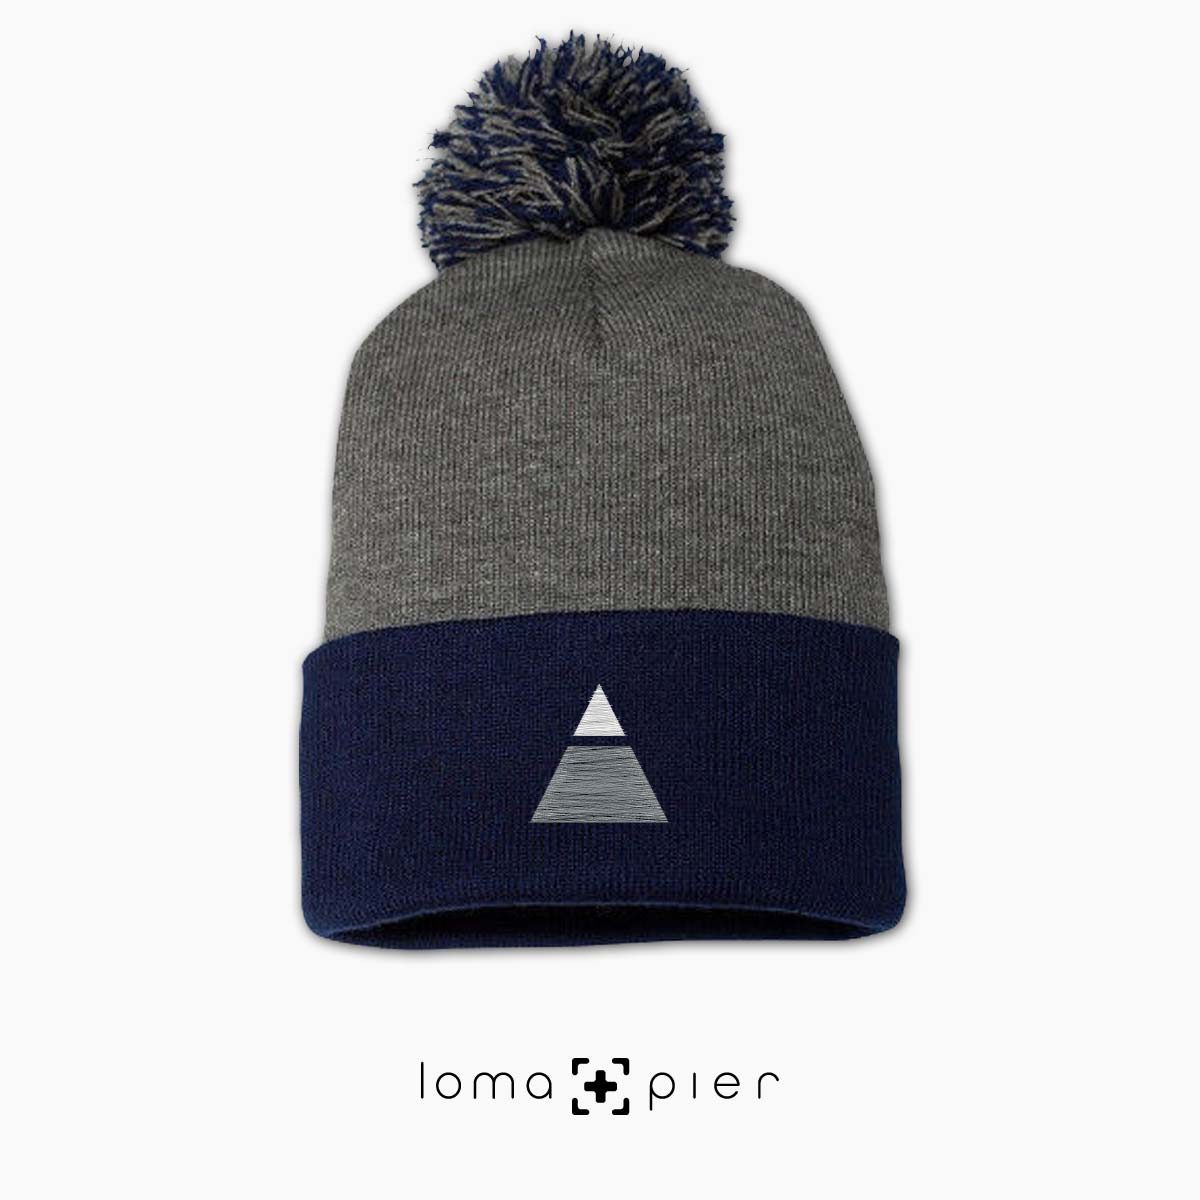 TRYANGLE icon embroidered on a heather grey and navy blue pom pom beanie with white thread by loma+pier hat store